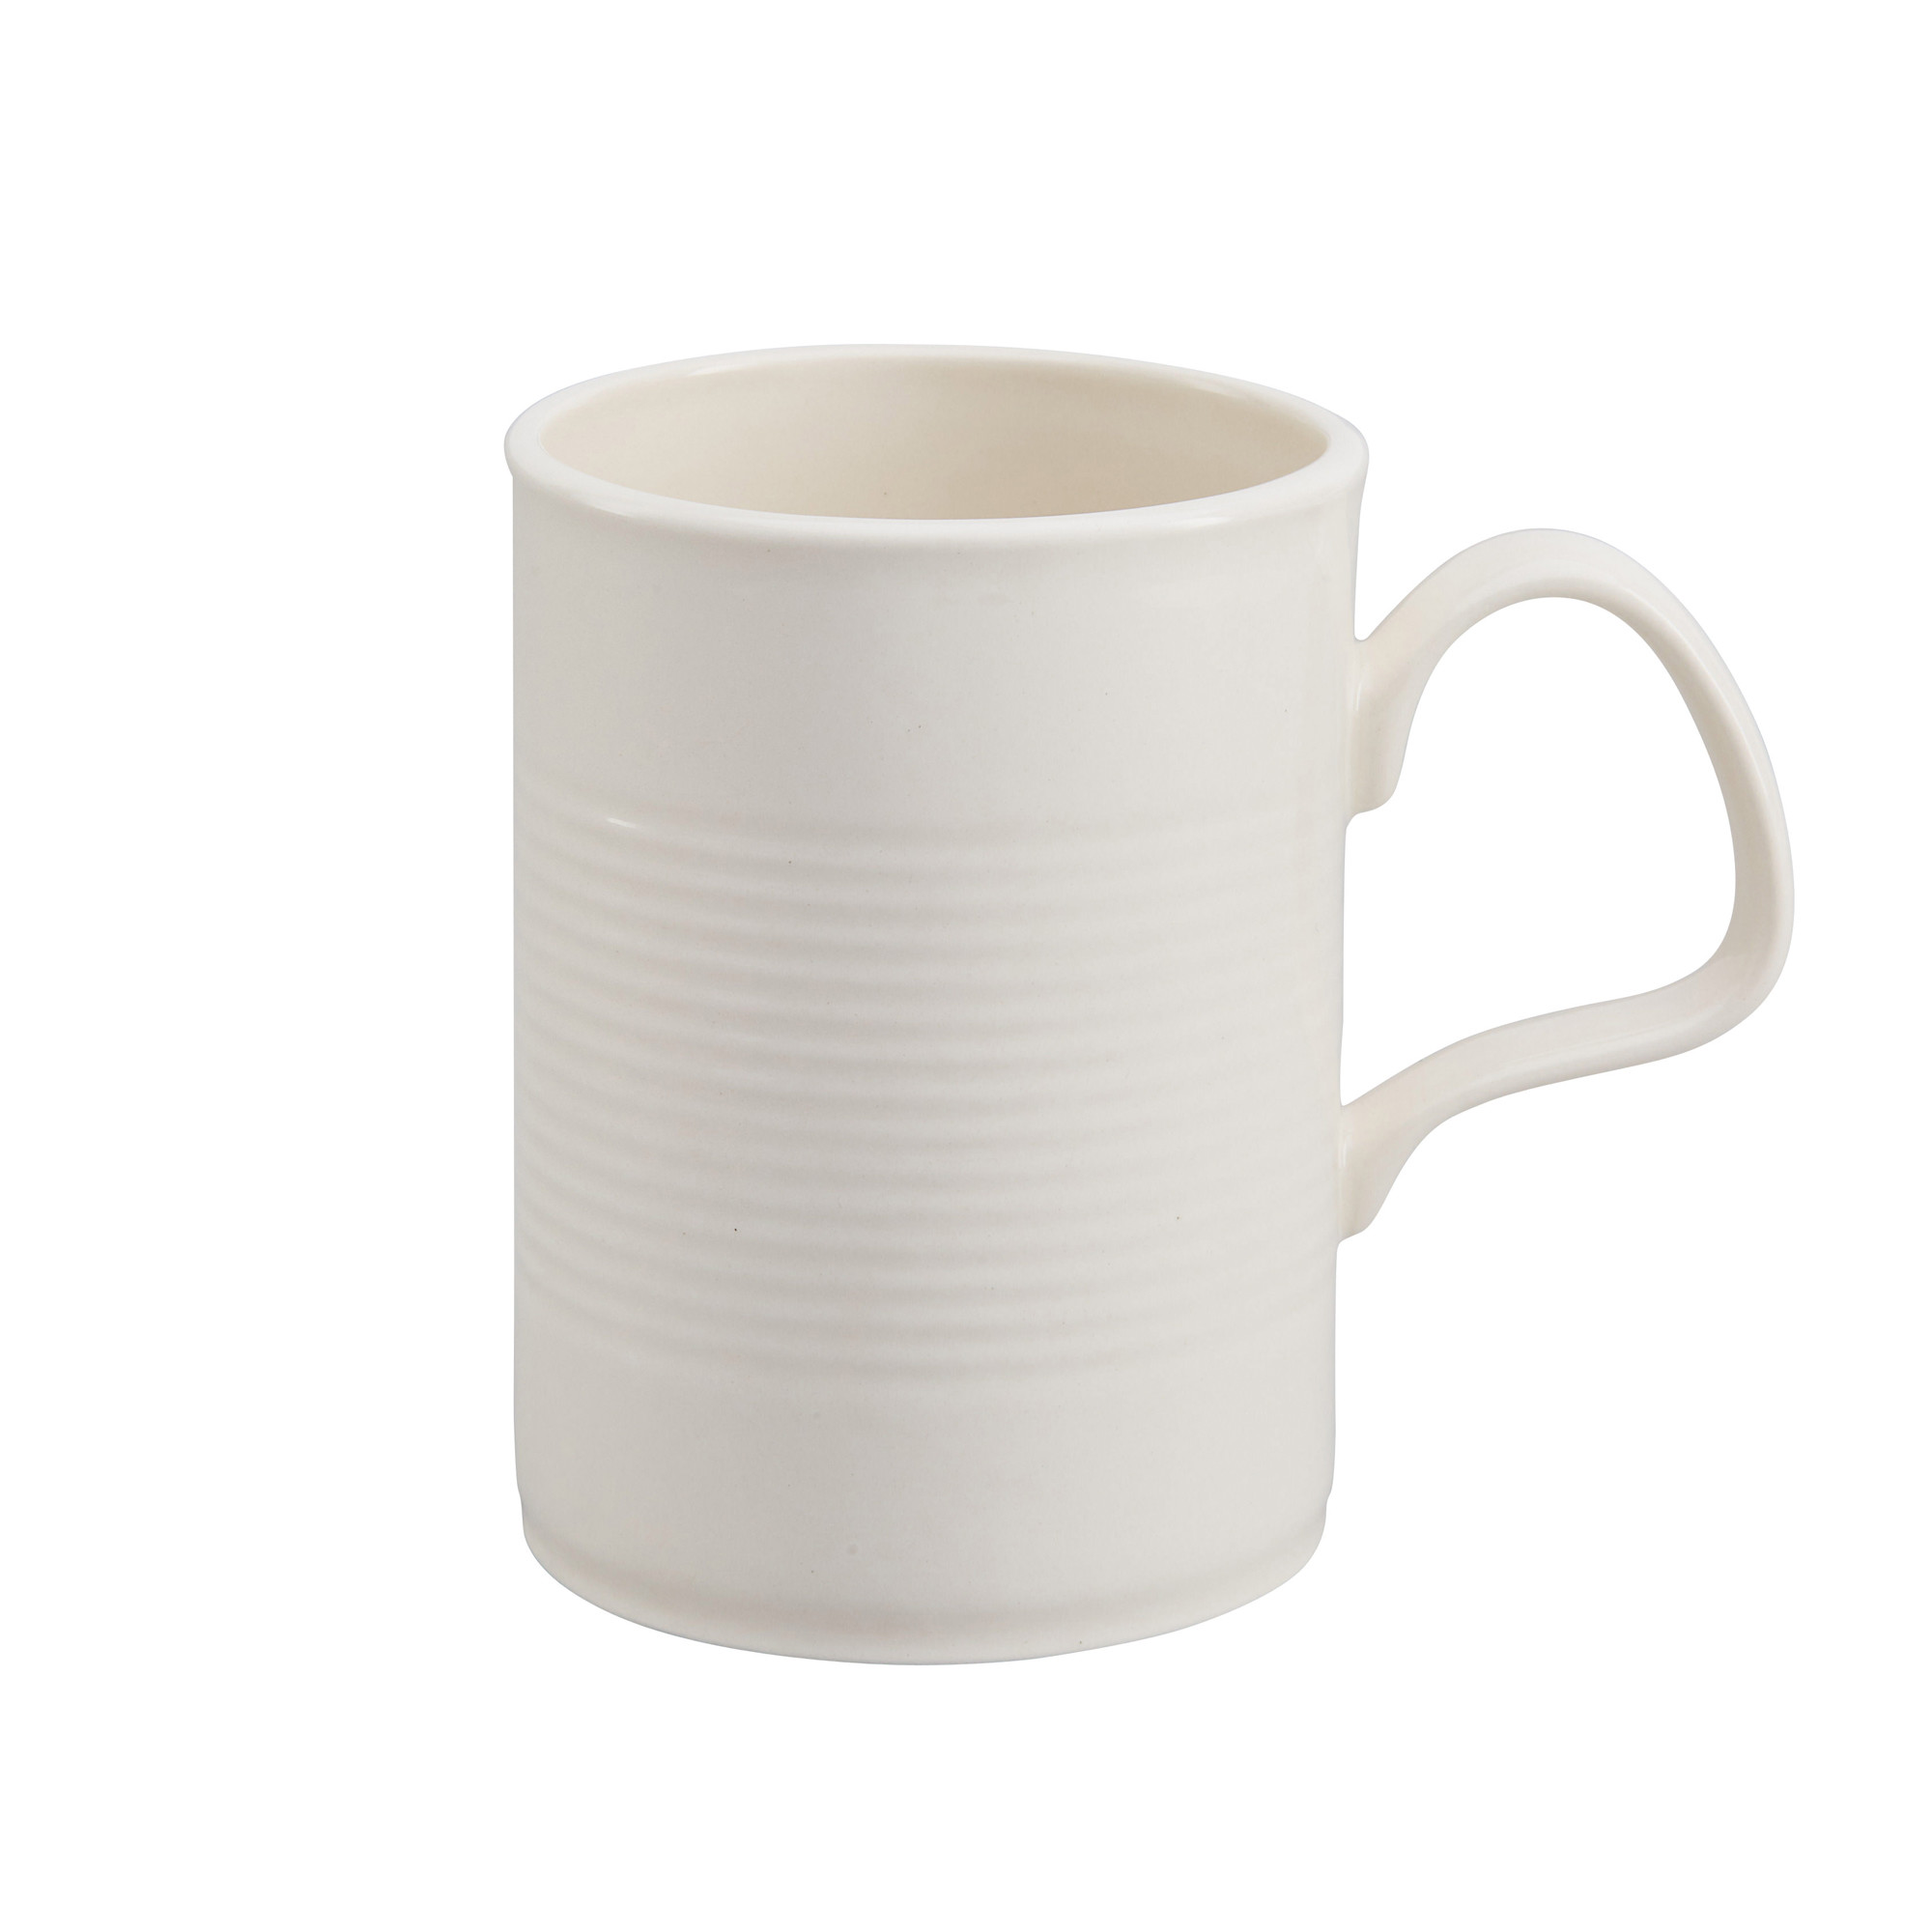 "<span class=""link fancybox-details-link""><a href=""/artists/37-stolen-form/works/1008-stolen-form-tin-can-mug-large-white-2017/"">View Detail Page</a></span><div class=""artist""><strong>Stolen Form</strong></div> <div class=""title""><em>Tin Can Mug - Large - White</em>, 2017</div> <div class=""medium"">Ceramic</div> <div class=""dimensions"">10.5 x 7.5 x 12 cm</div> <div class=""edition_details""></div><div class=""price"">£12.00</div><div class=""copyright_line"">Copyright The Artist</div>"